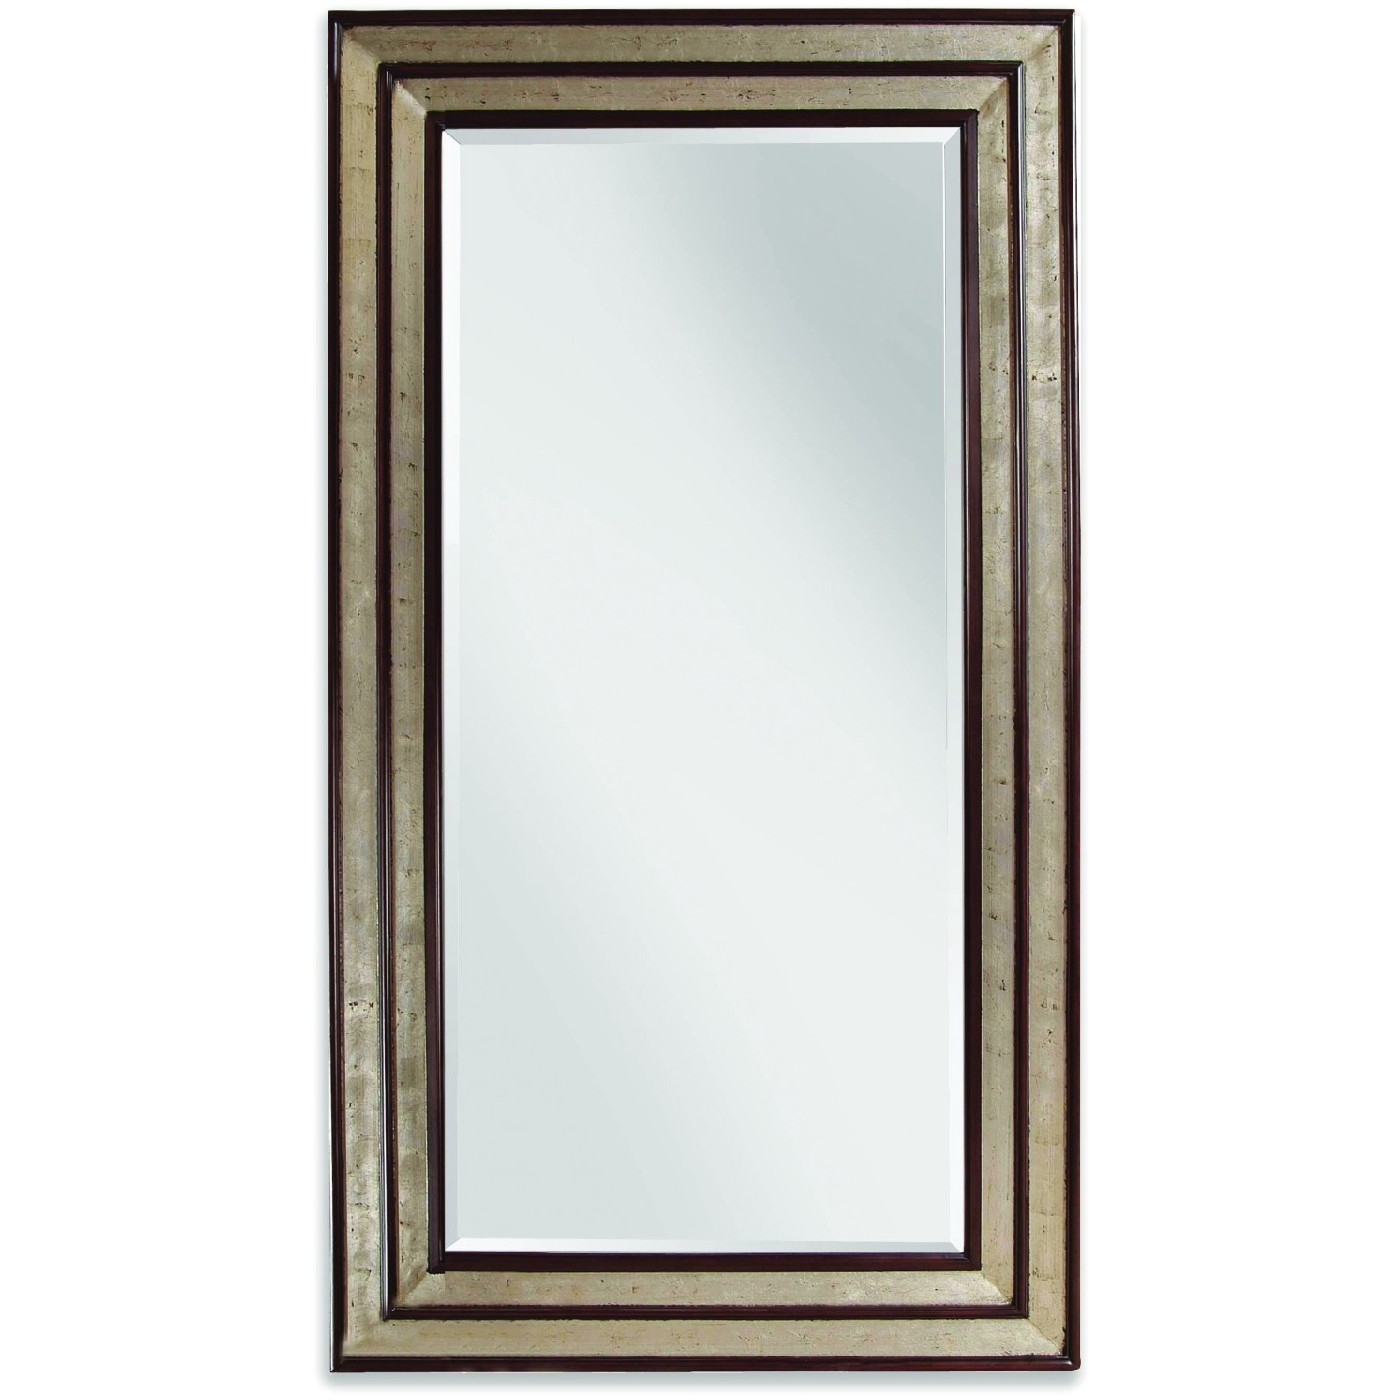 Cyrus traditional extra large leaner floor mirror m2824bec for Extra large mirrors